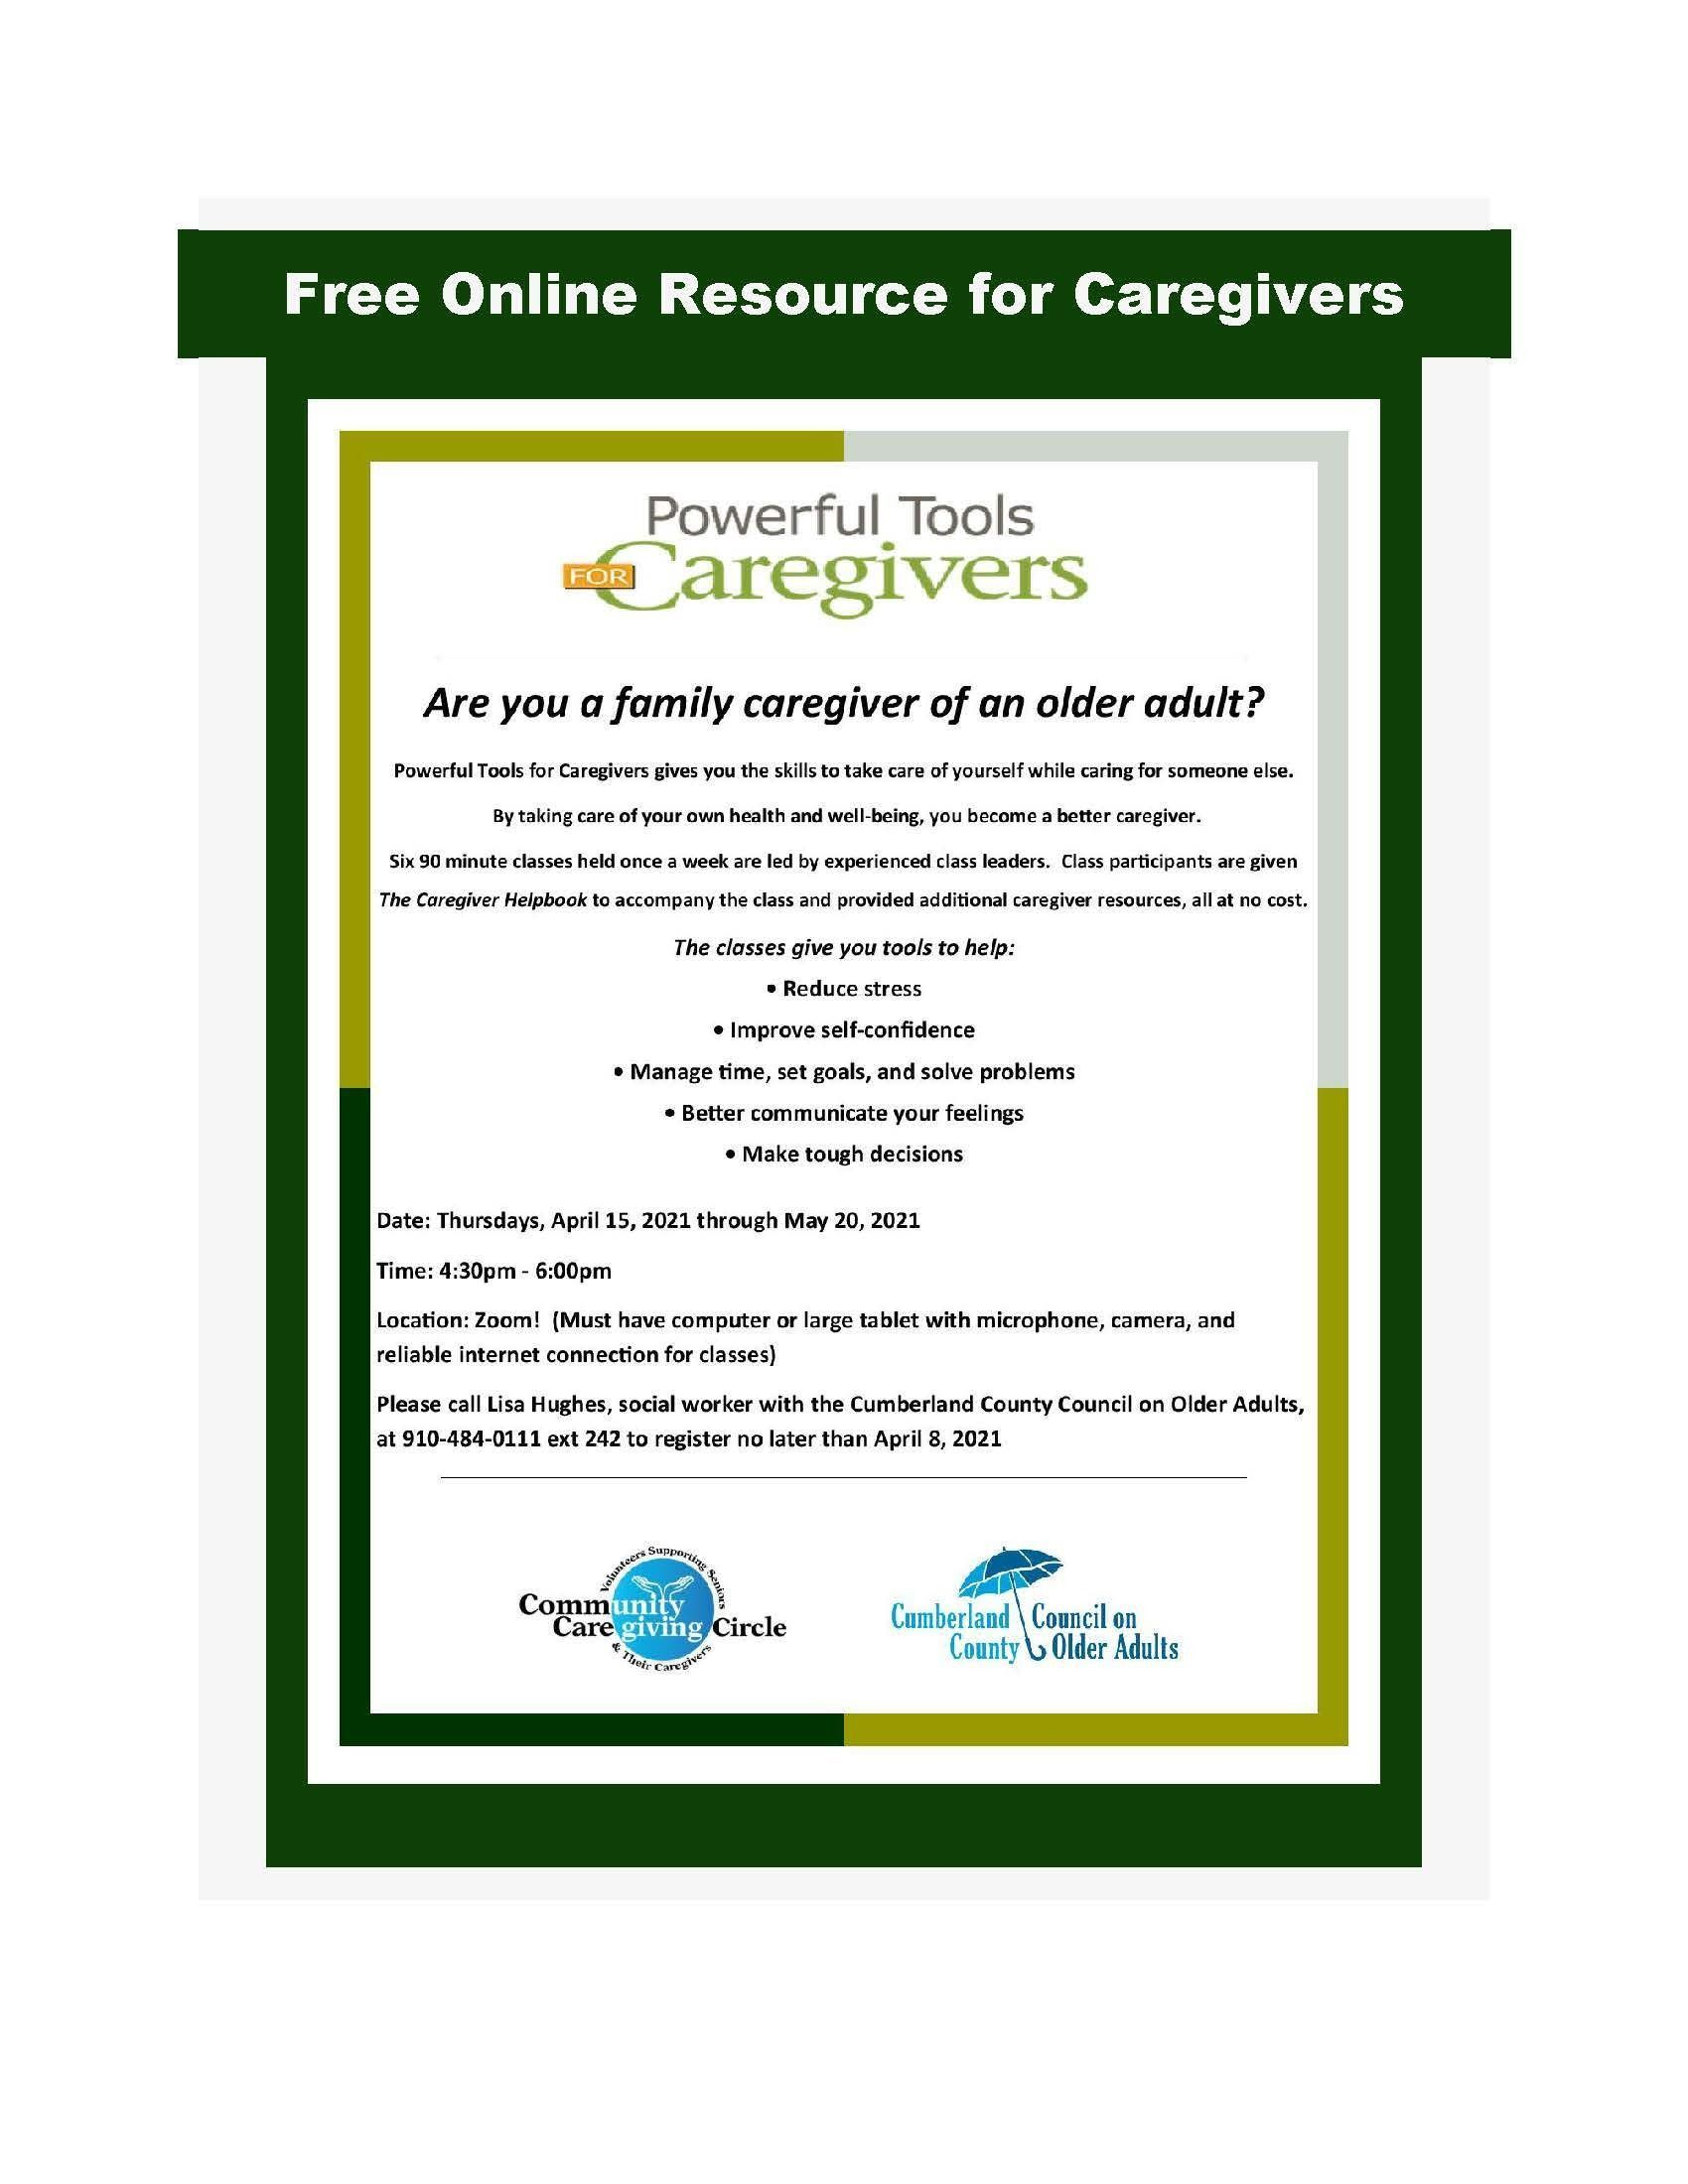 Free Online Powerful Tools for Caregivers Classes